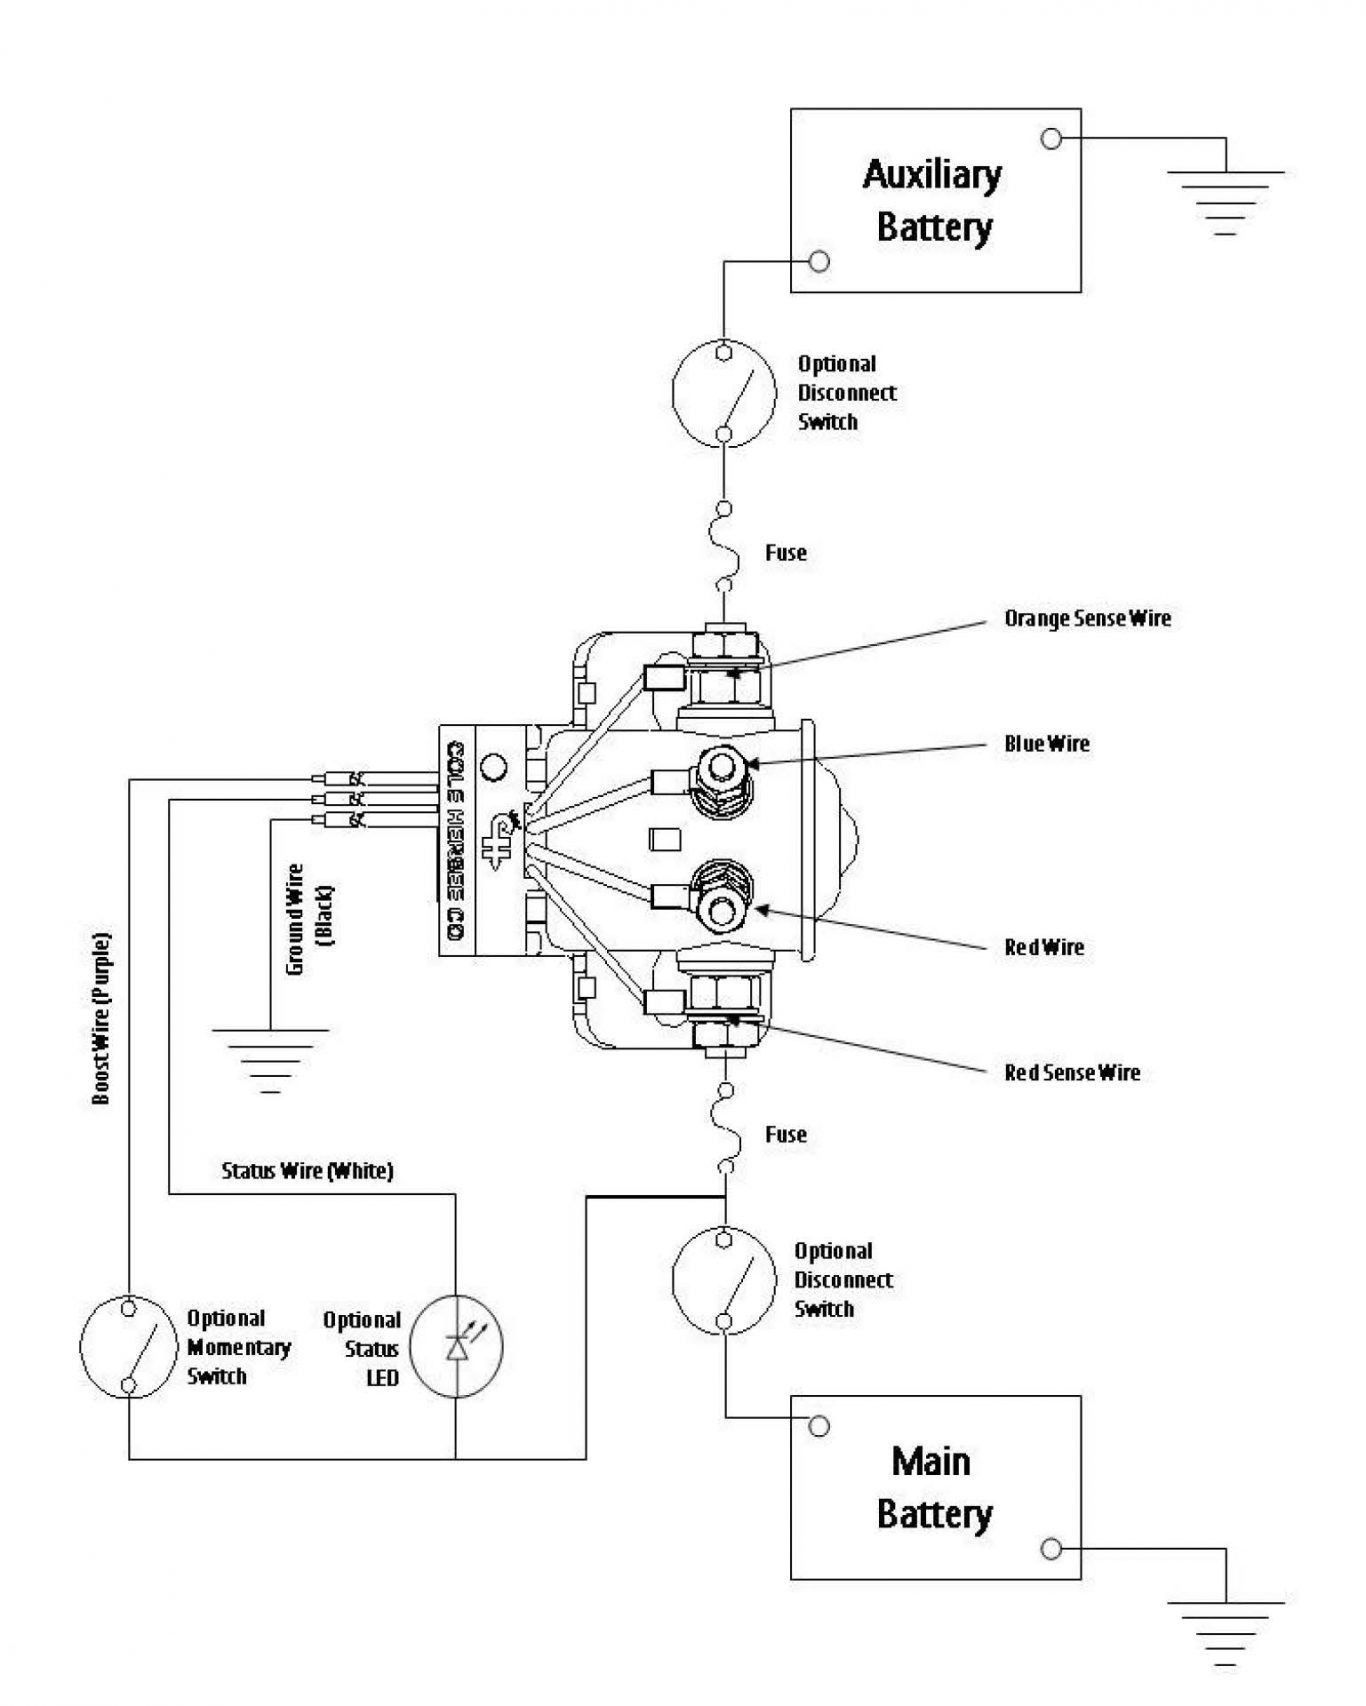 Unique Wiring Diagram For Mk Garage Kit Diagram Diagramsample Diagramtemplate Wiringdiagram Diagr Electrical Wiring Diagram Car Stereo Systems Boat Wiring